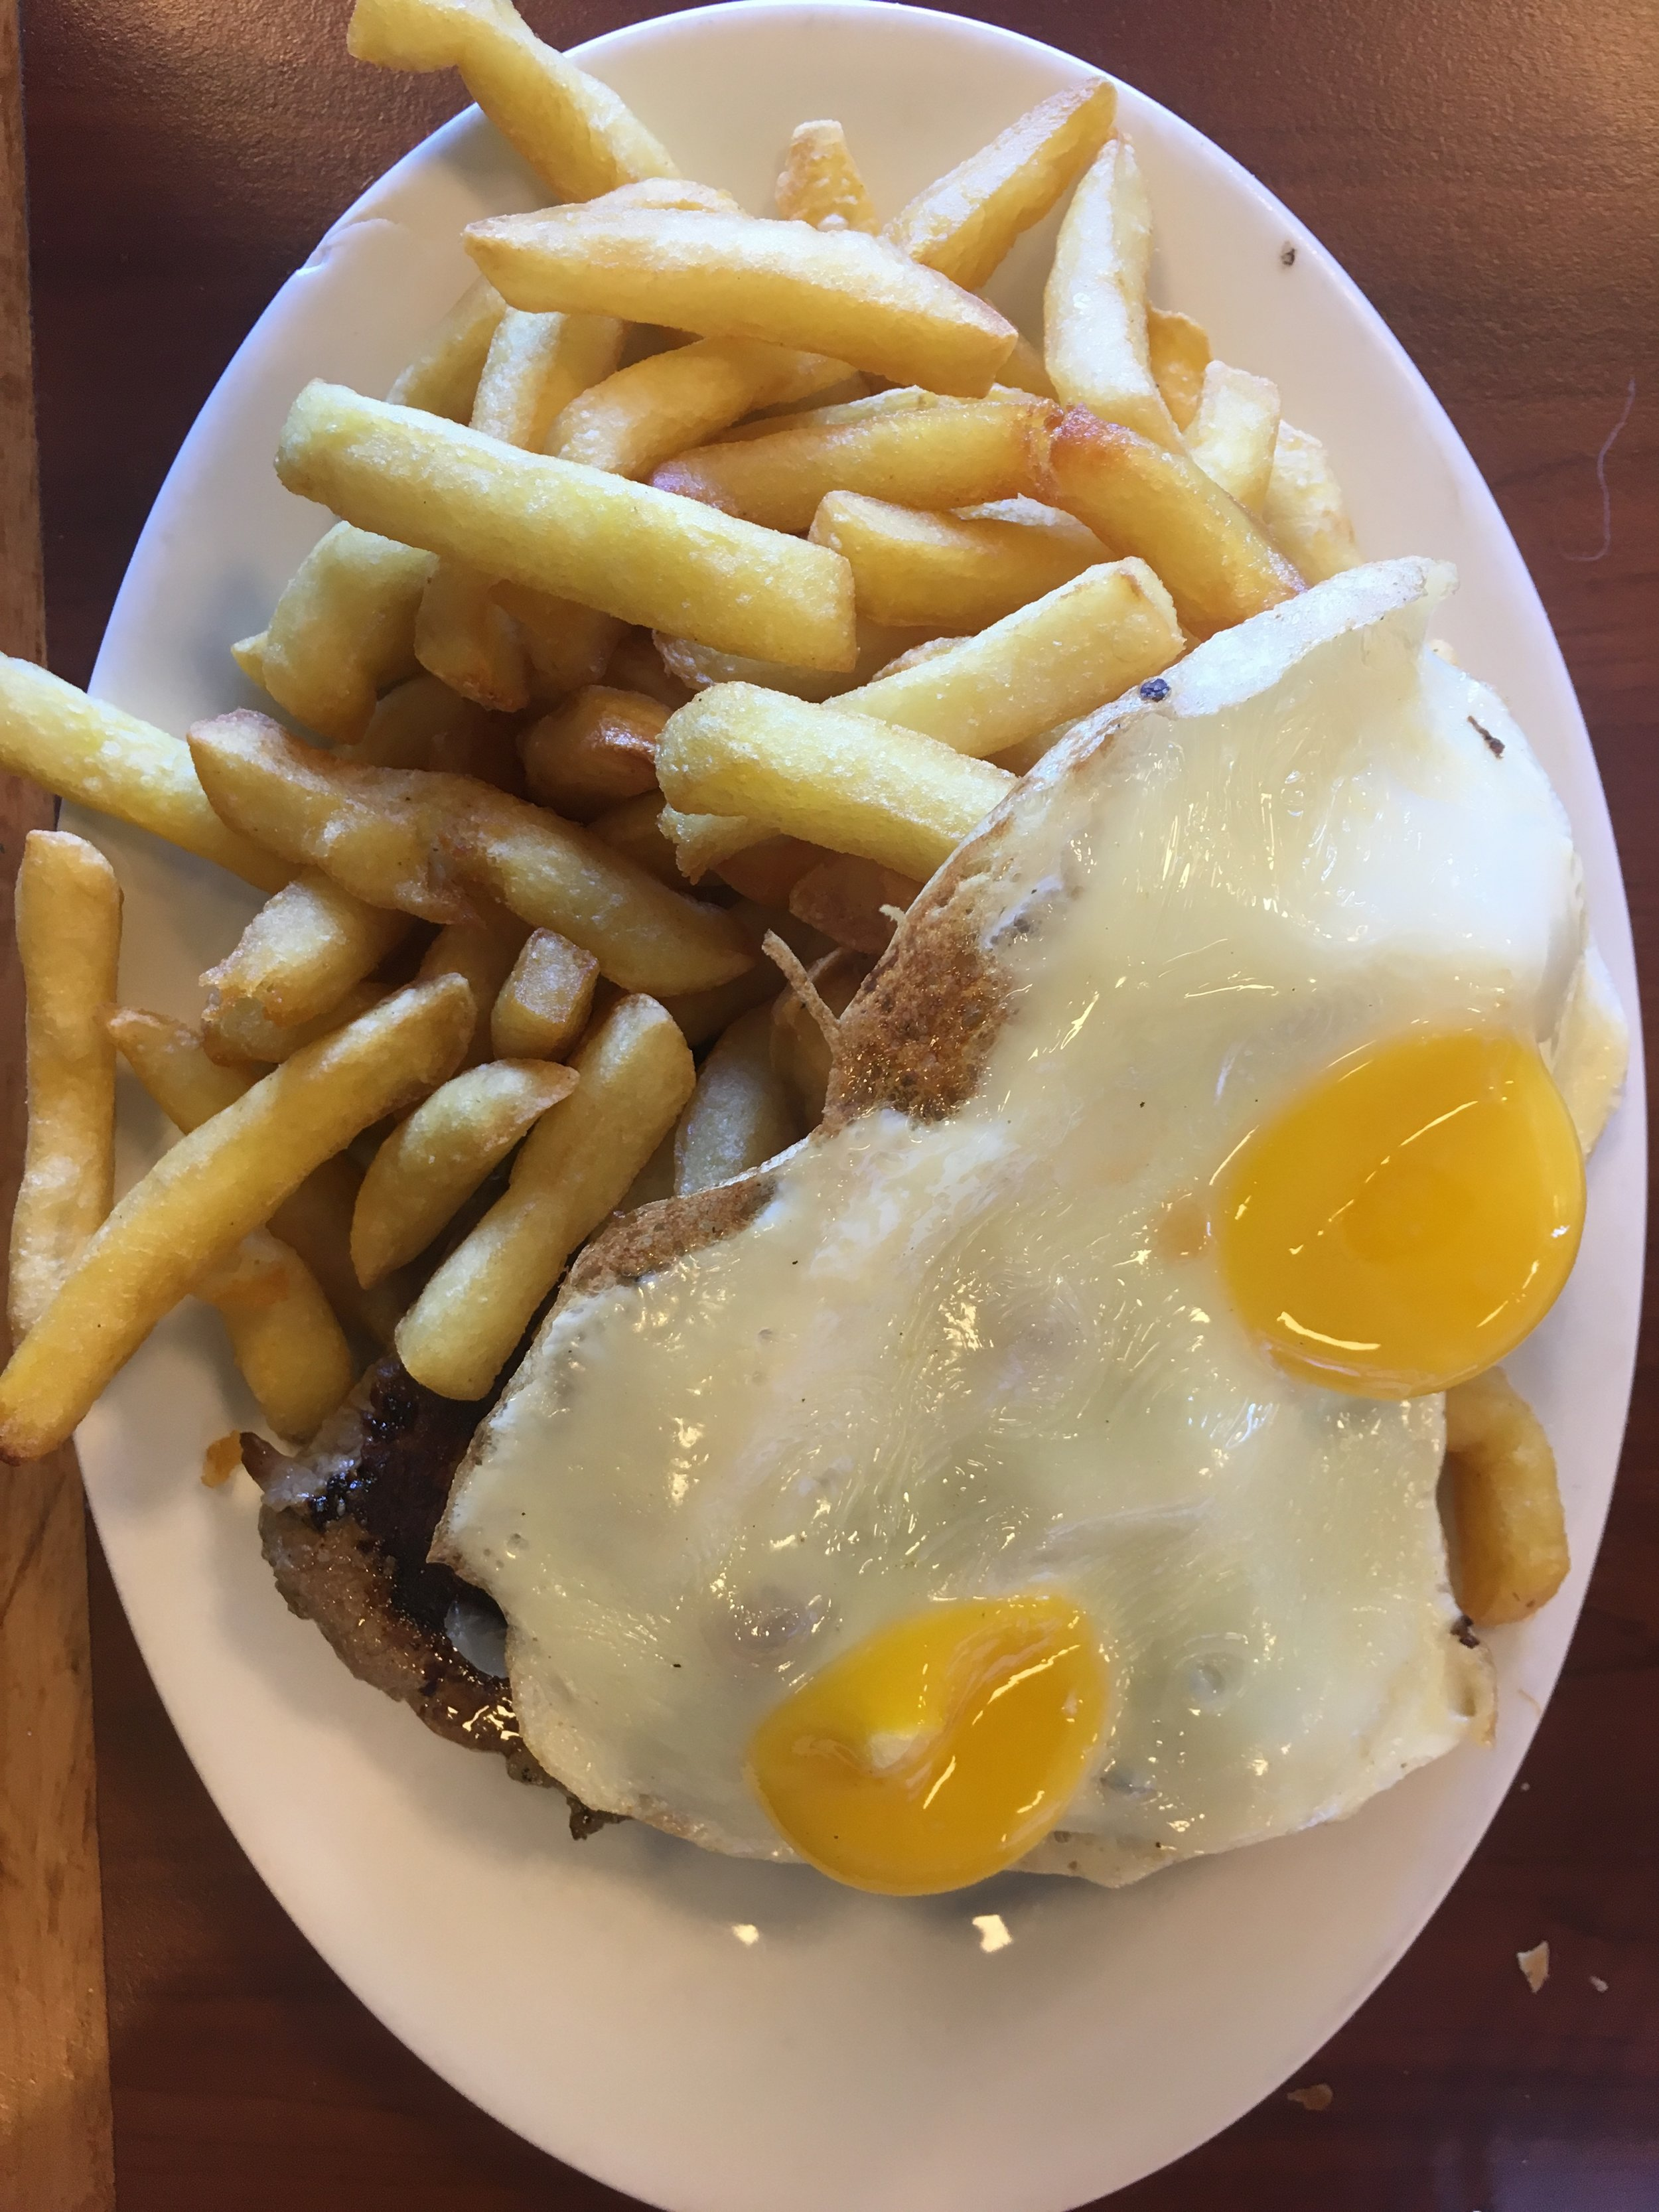 Lomo a lo Pobre (steak, eggs, fries).  Yes, I ate it all.